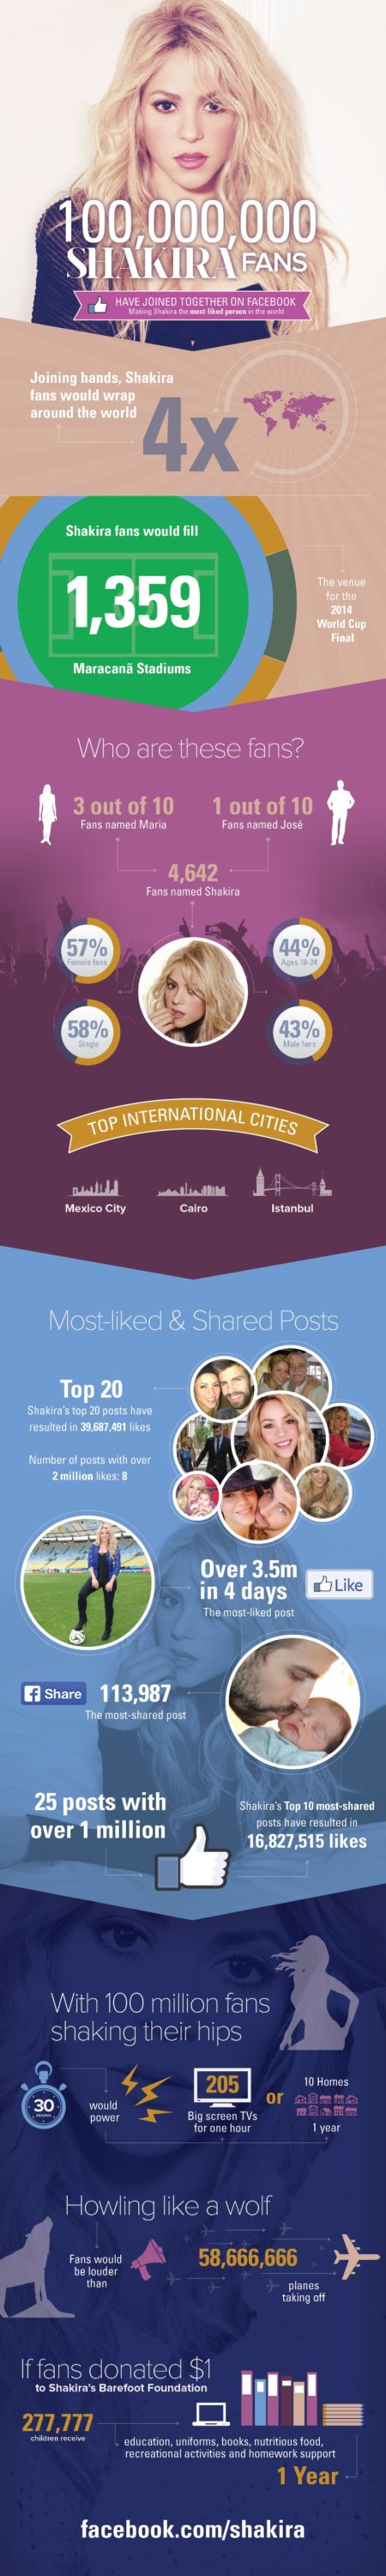 SHK_Infographic_Layout13